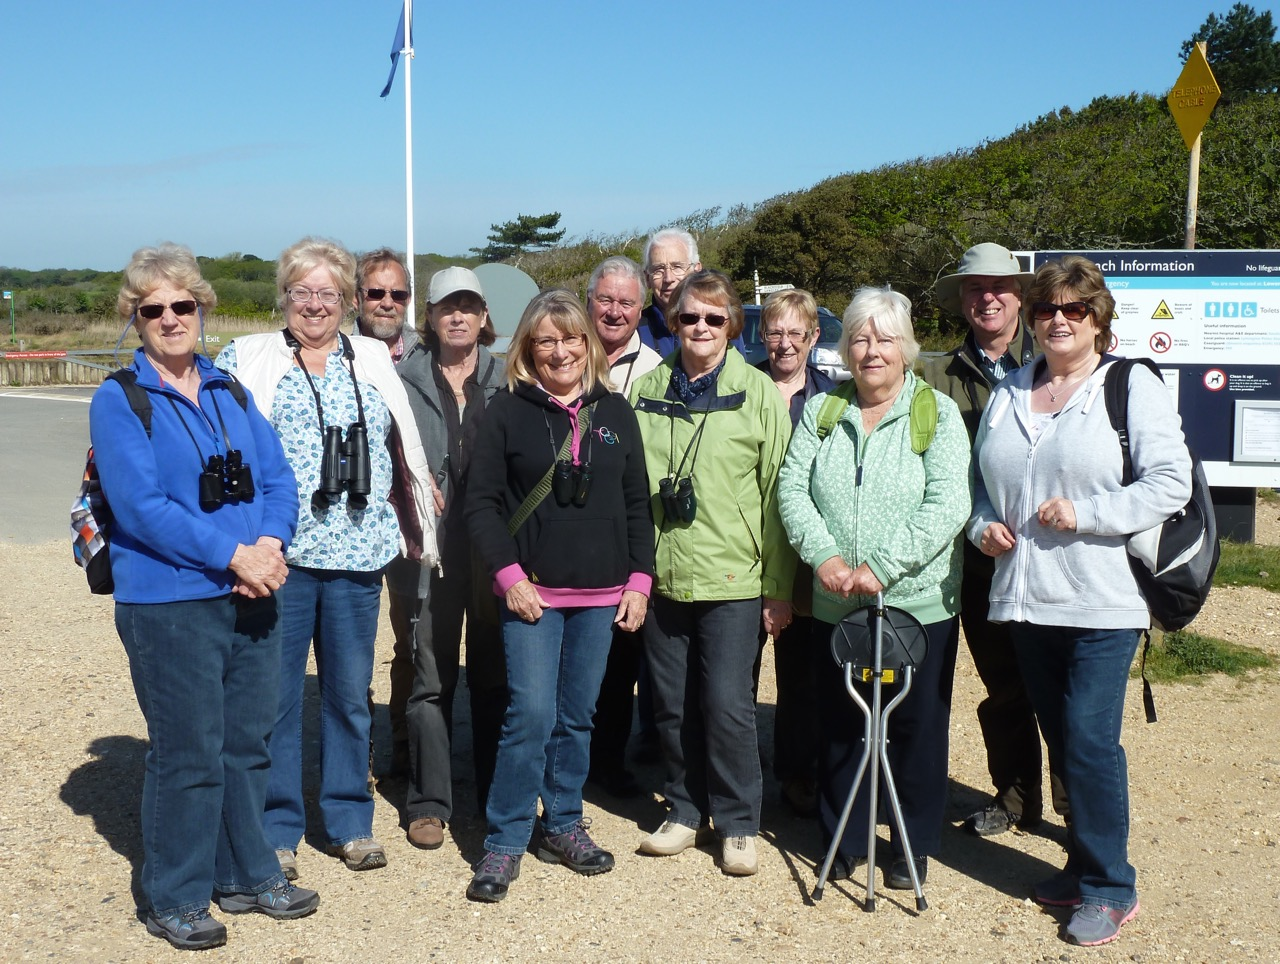 Congregating for our Bird Walk at Lepe